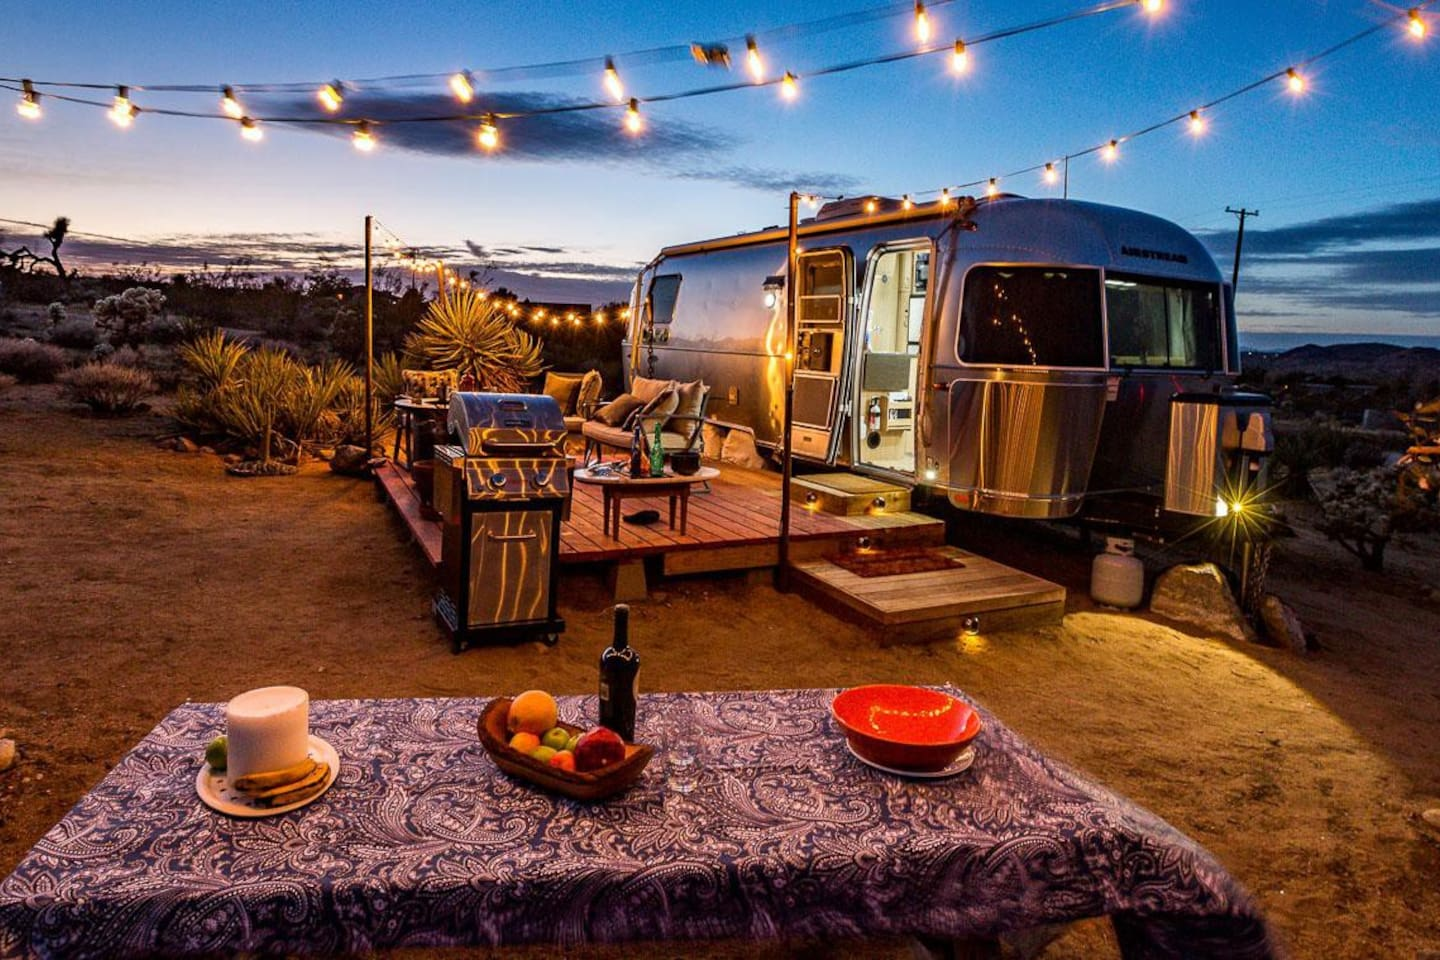 Magical Airstream - Glamping in Joshua Tree